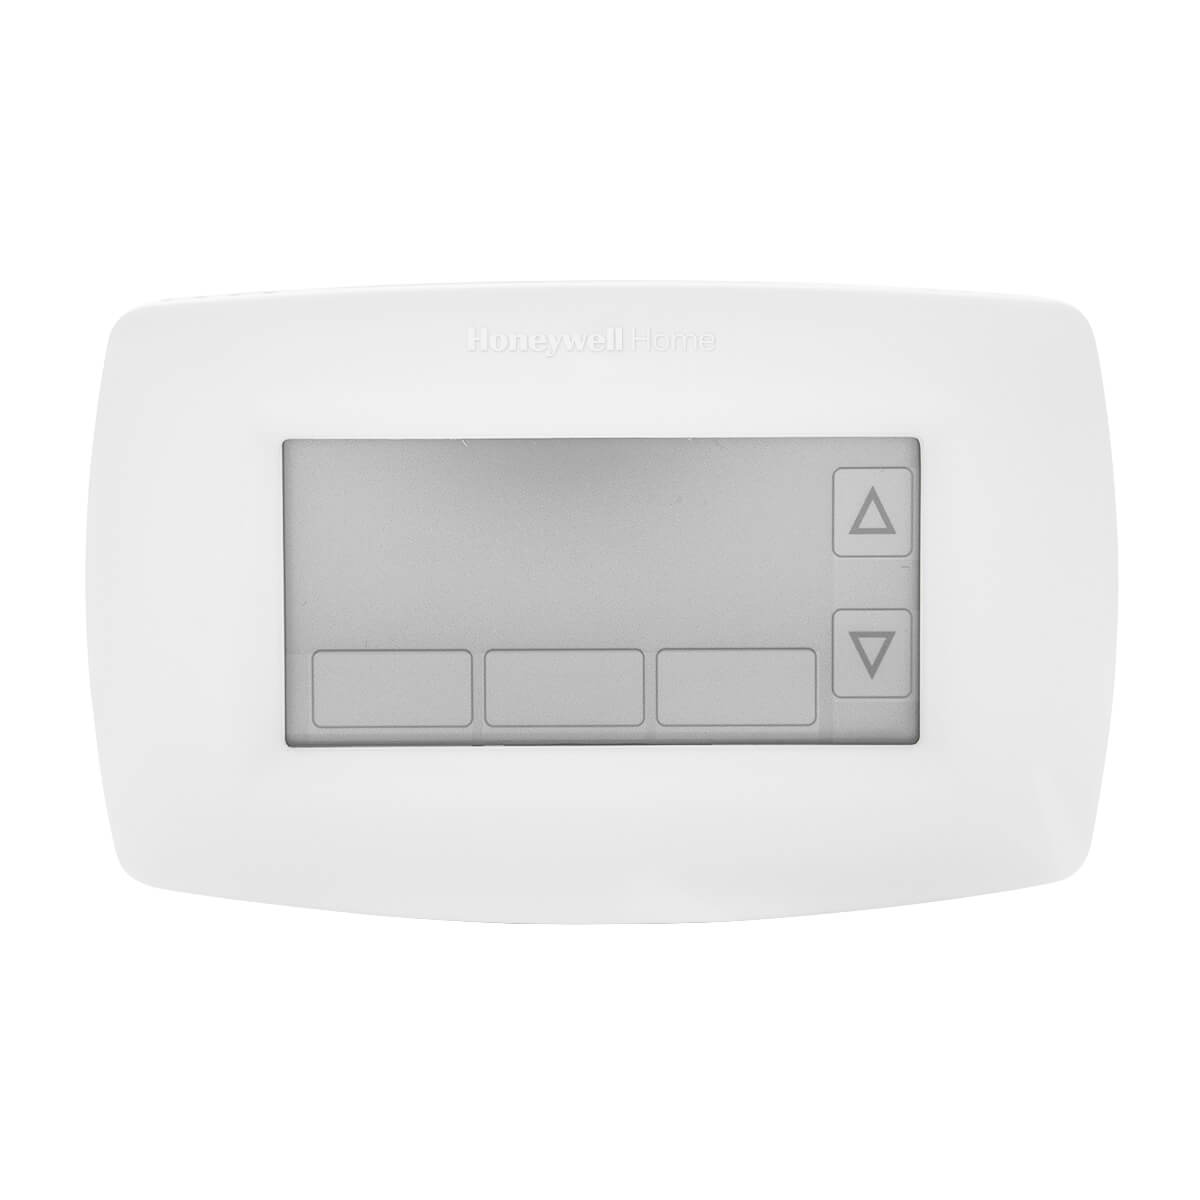 Honeywell 7-Day Touchscreen Programmable Thermostat RTH7600D1030//E1